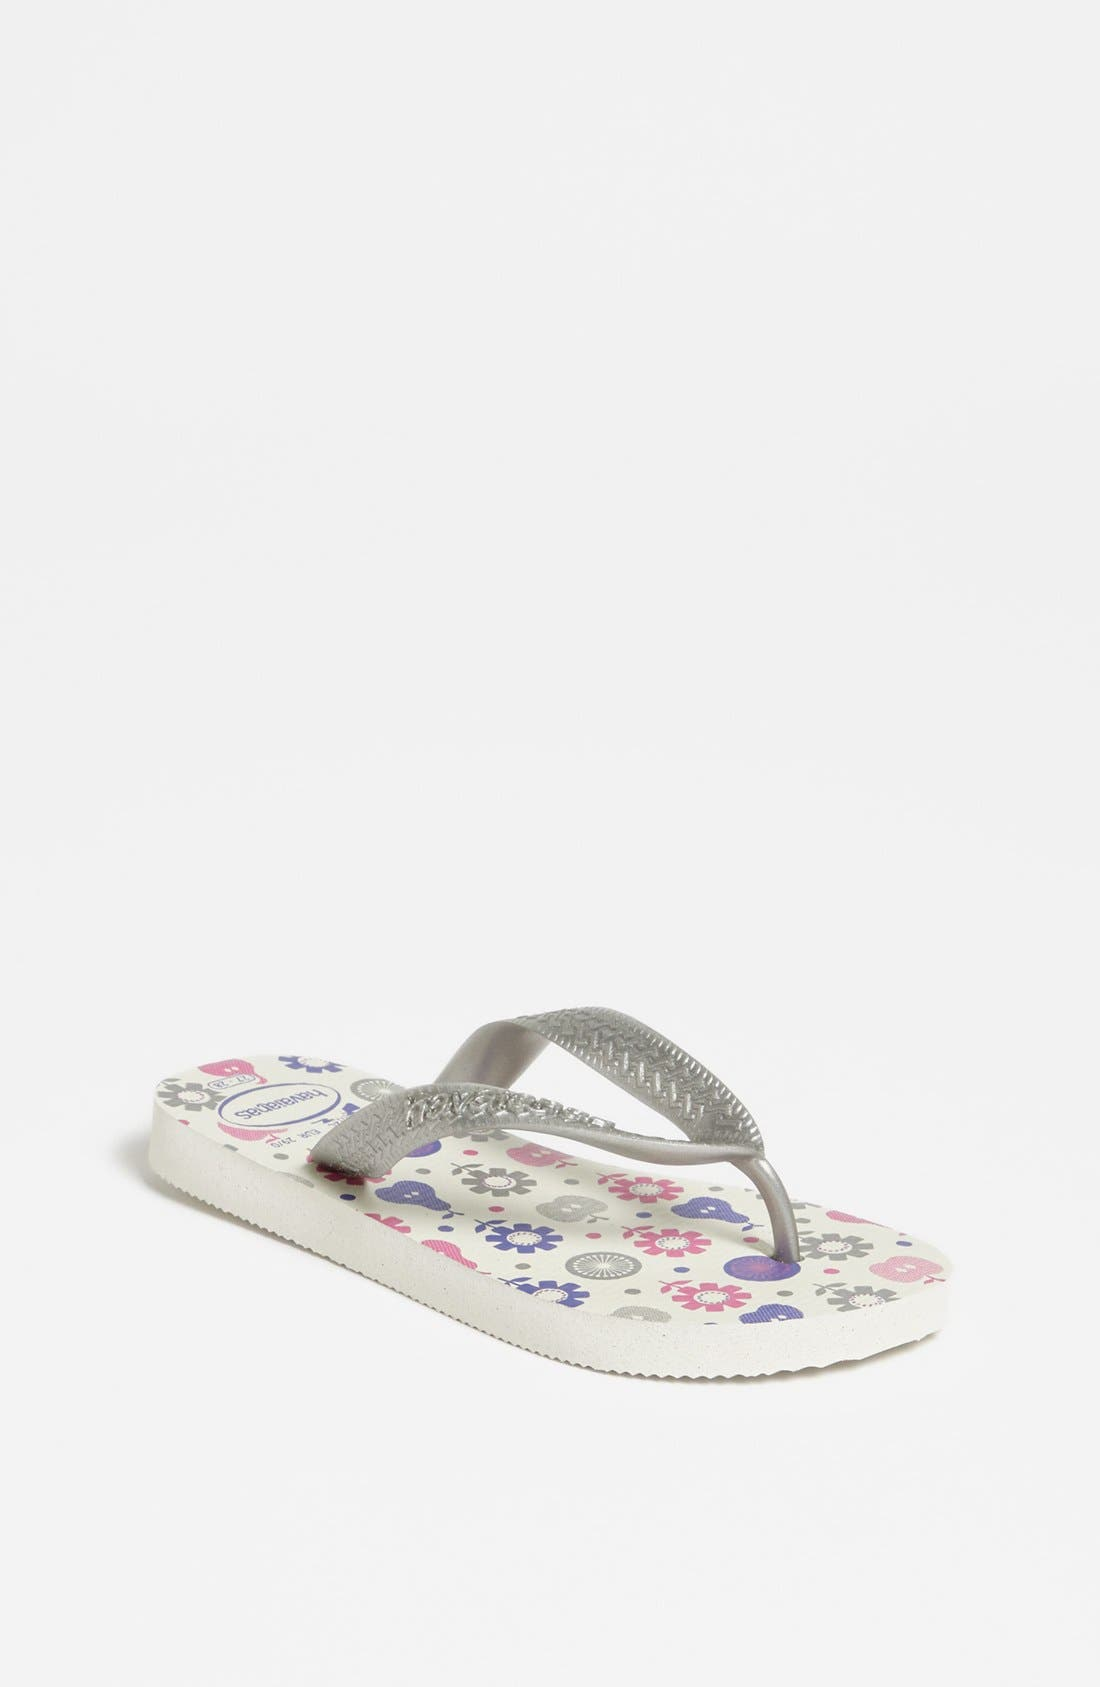 Main Image - Havaianas 'Flores' Flip Flop (Toddler & Little Kid)